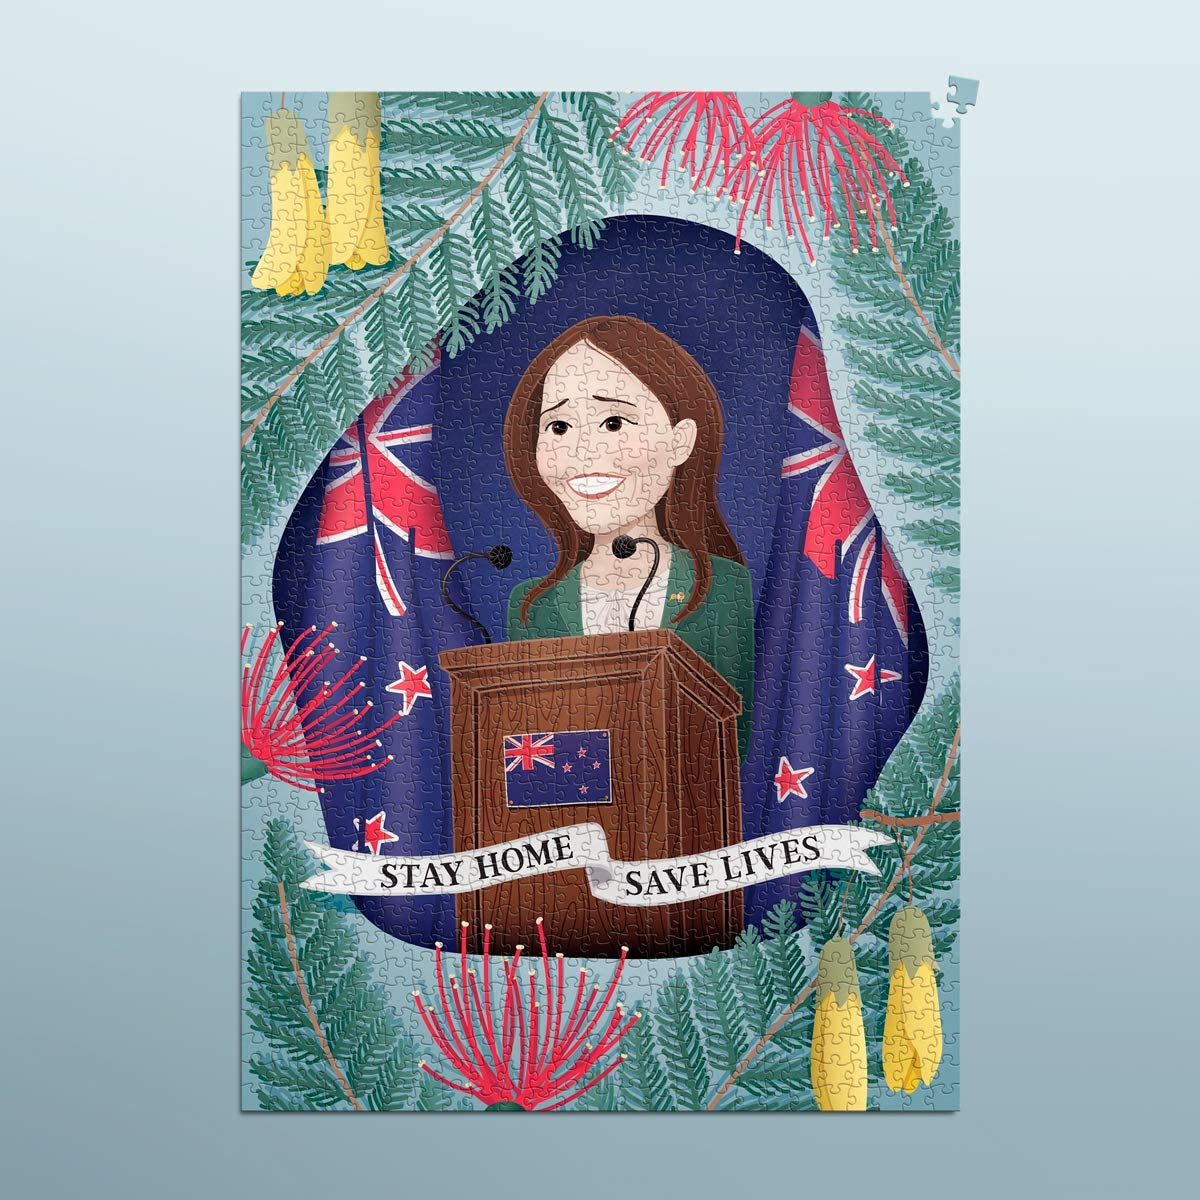 Puzzle for Adults Jacinda Ardern Limited Edition Jigsaw Puzzle New Zealand Prime Minister 1000 Piece. Artwork by Kiwi Artist